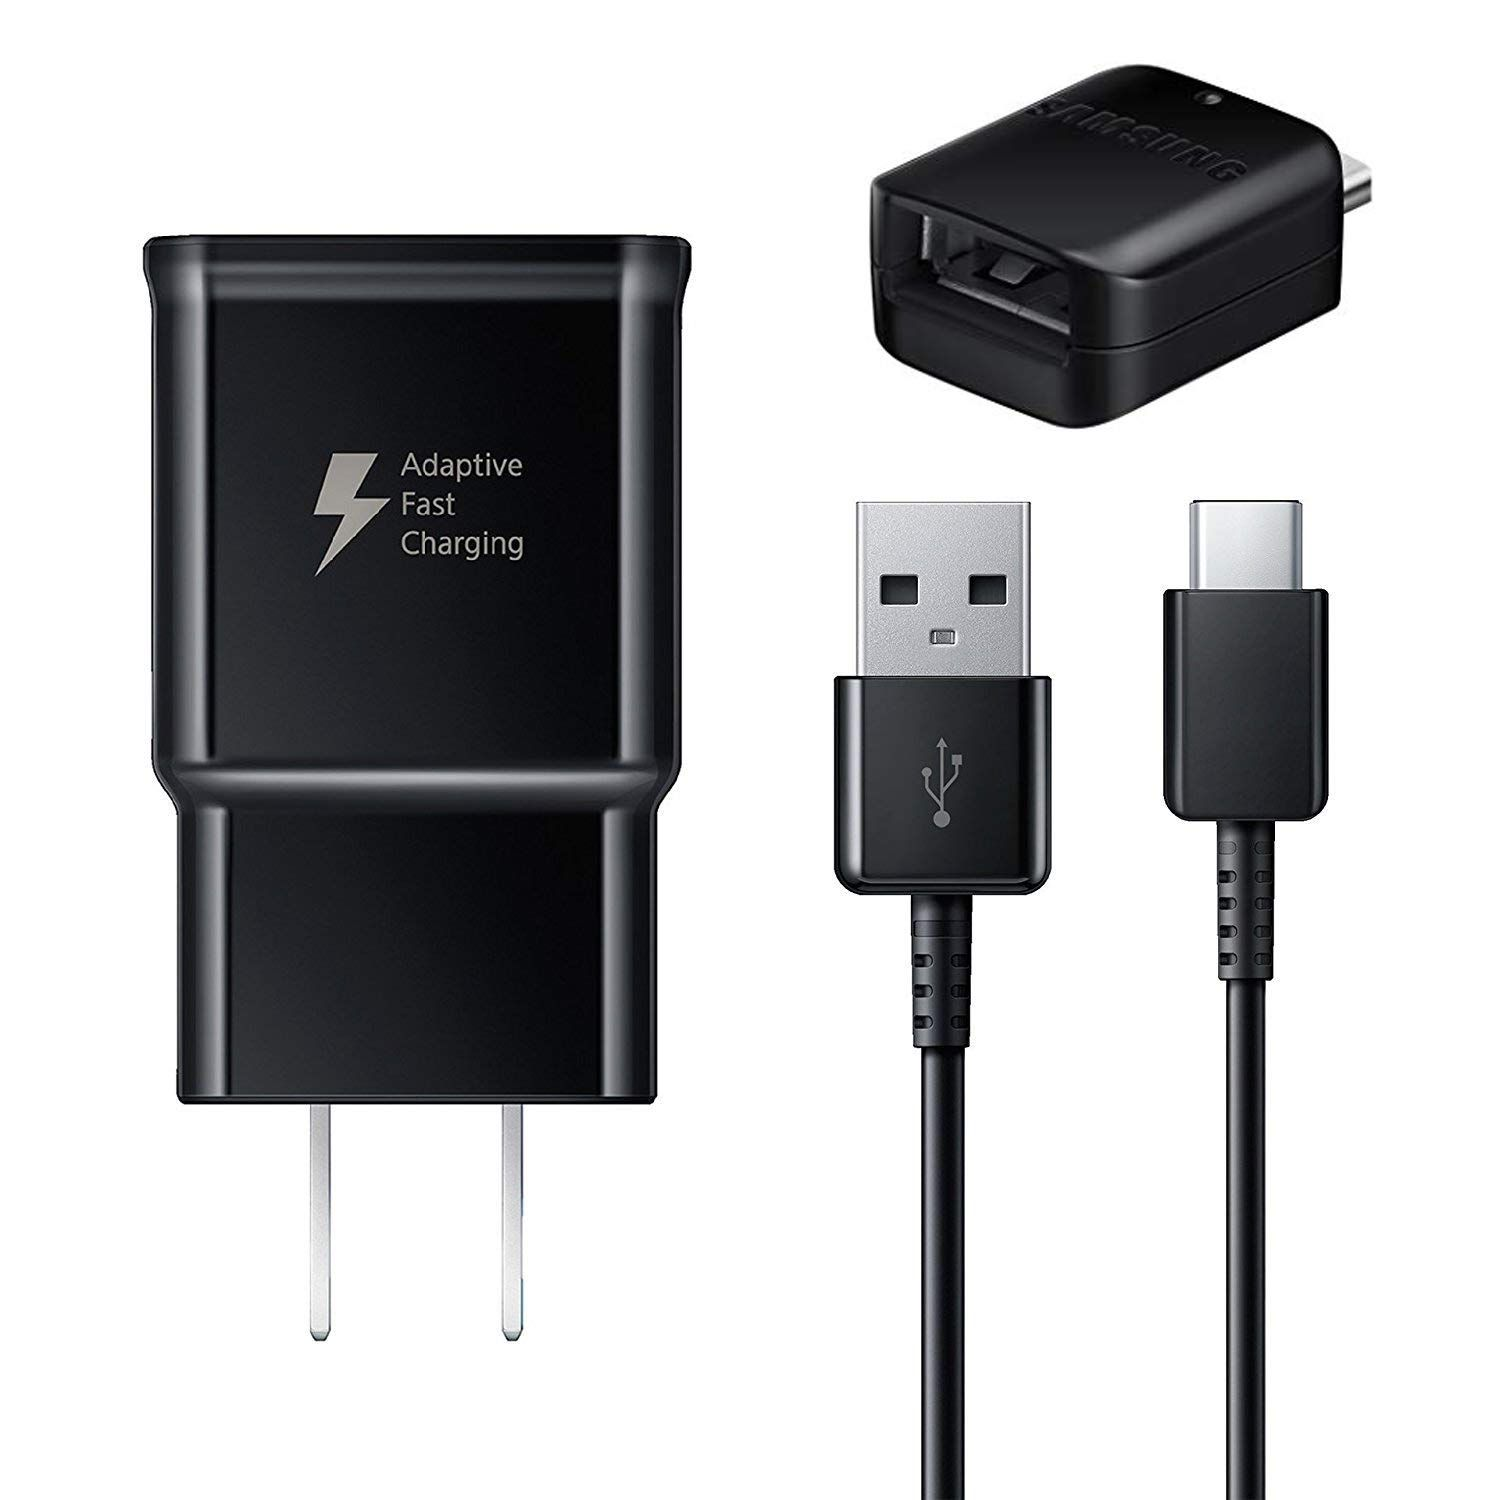 Samsung Fast Adaptive Wall Adapter Charger for Galaxy S10 S9